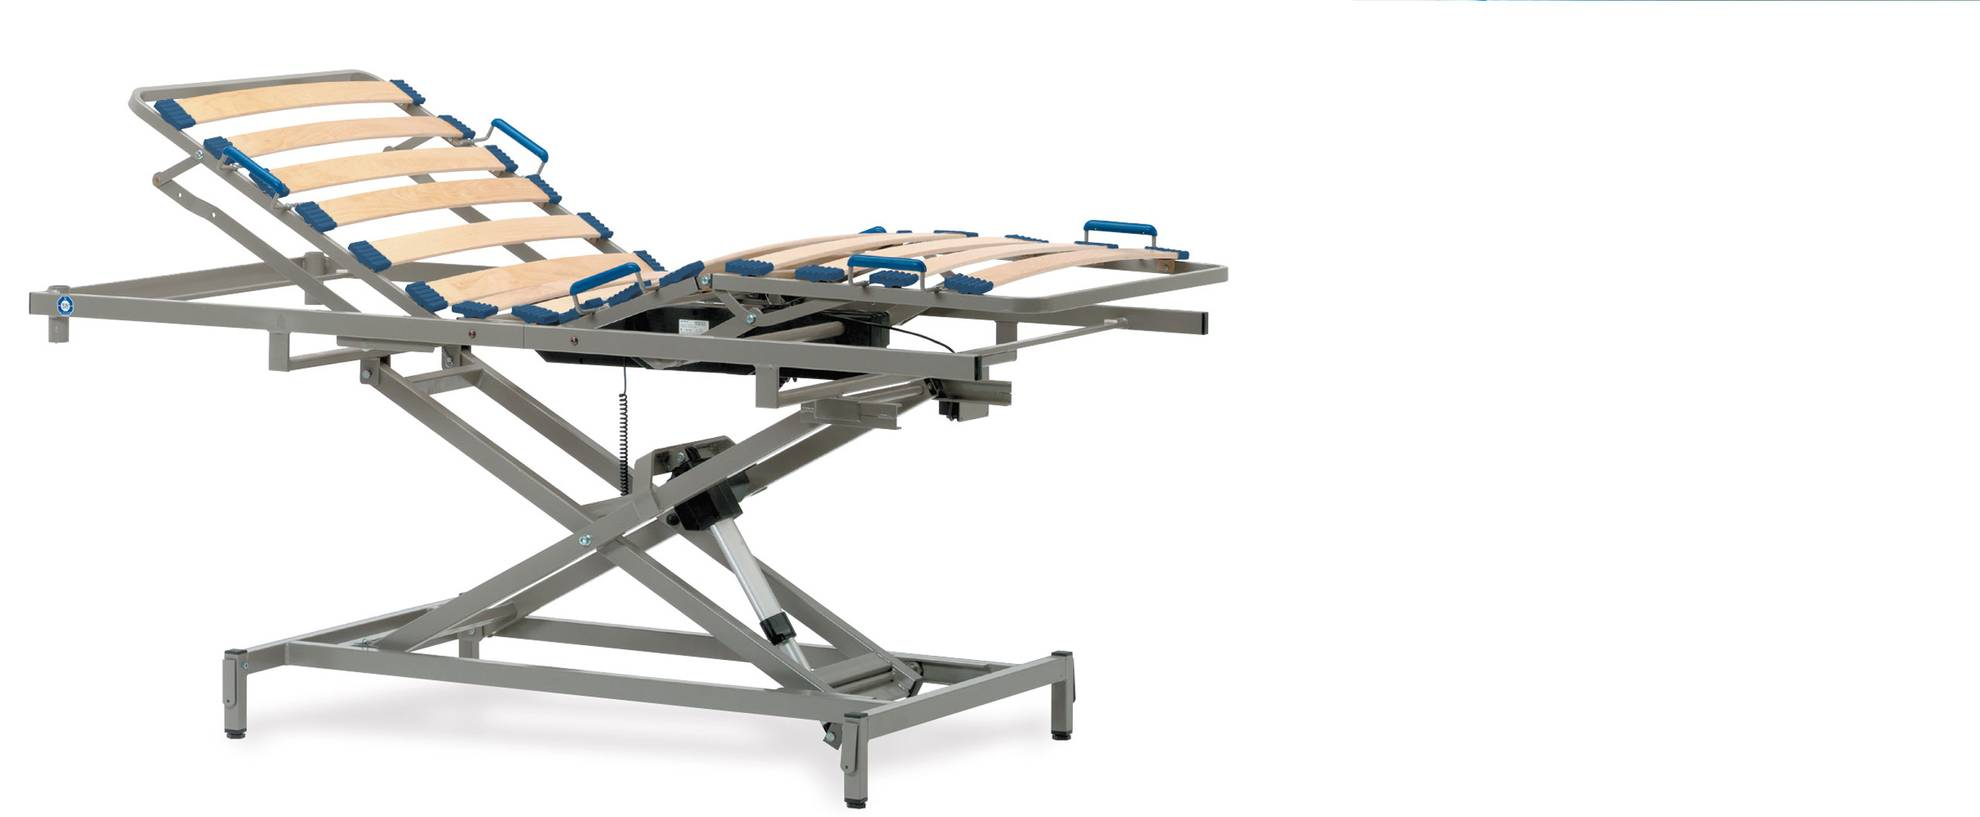 Bett System Bed In Bed System For Nursing Care Bed Conversion Bock